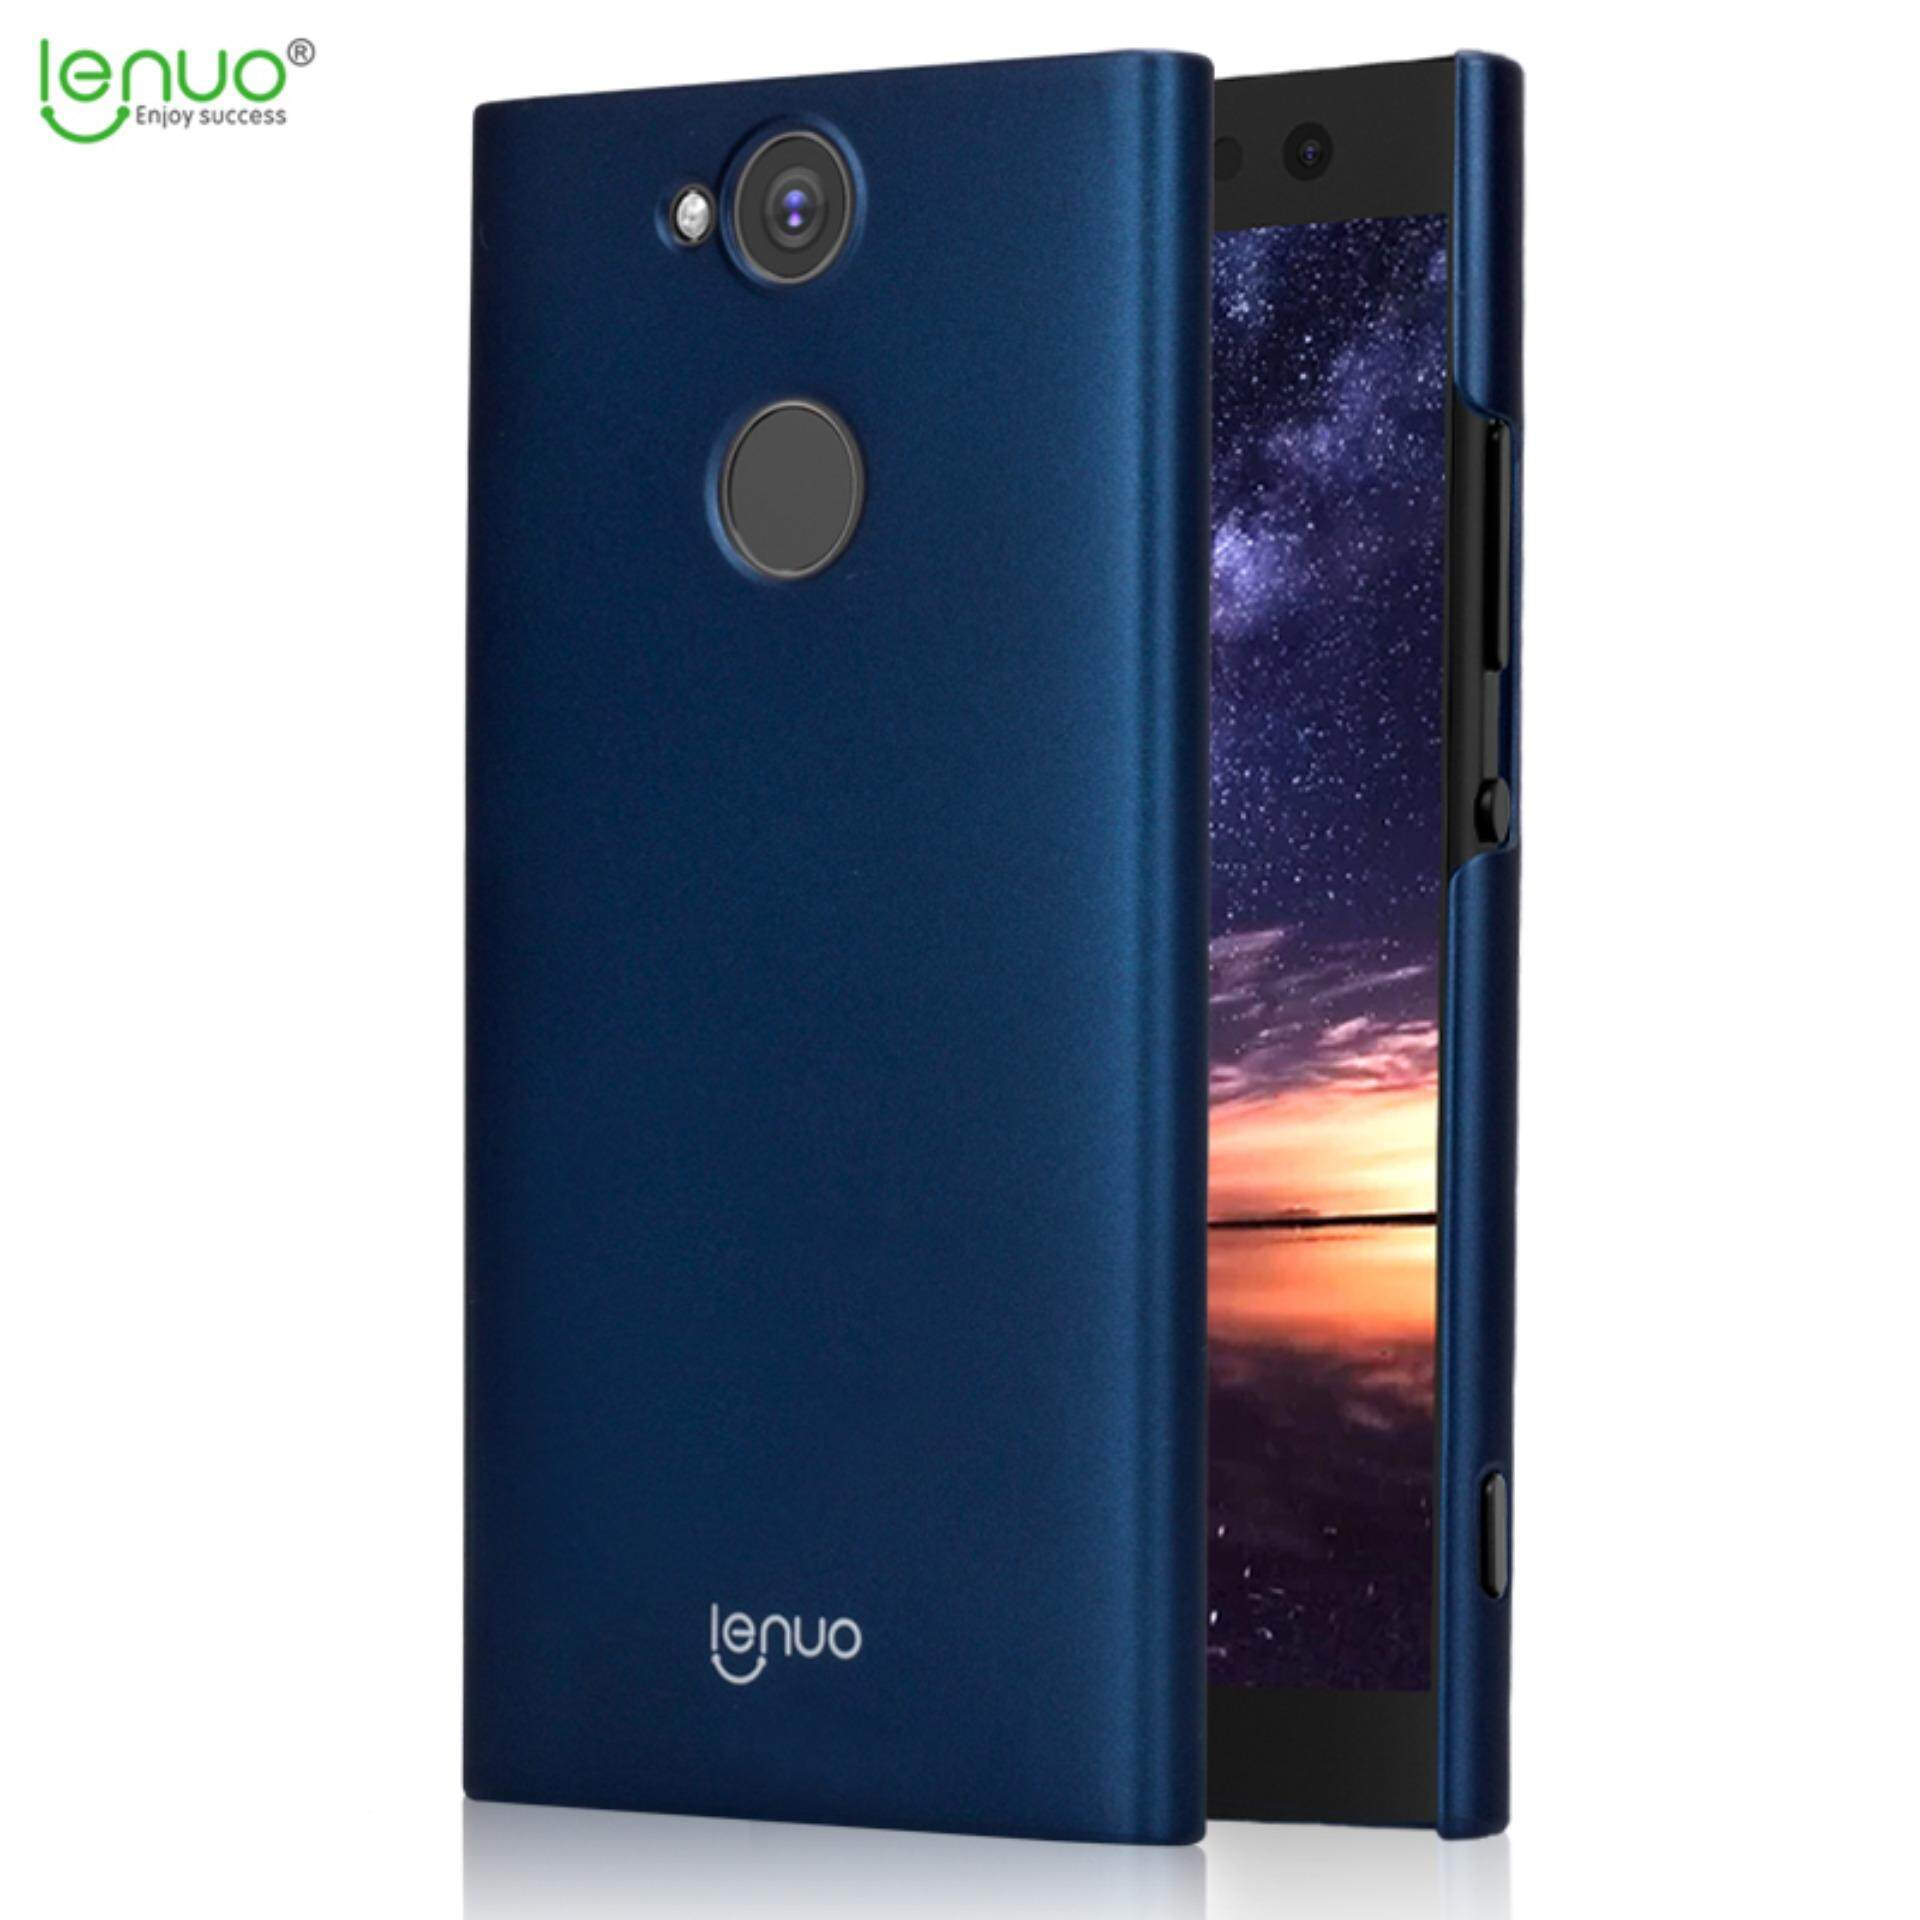 Sony Xperia XA2 Case, Lenuo Ledun PC Exact Fit Ultra Slim Thin Handy Shield Shell Hard Back Case Protective Cover for Sony Xperia XA2 - Blue - intl